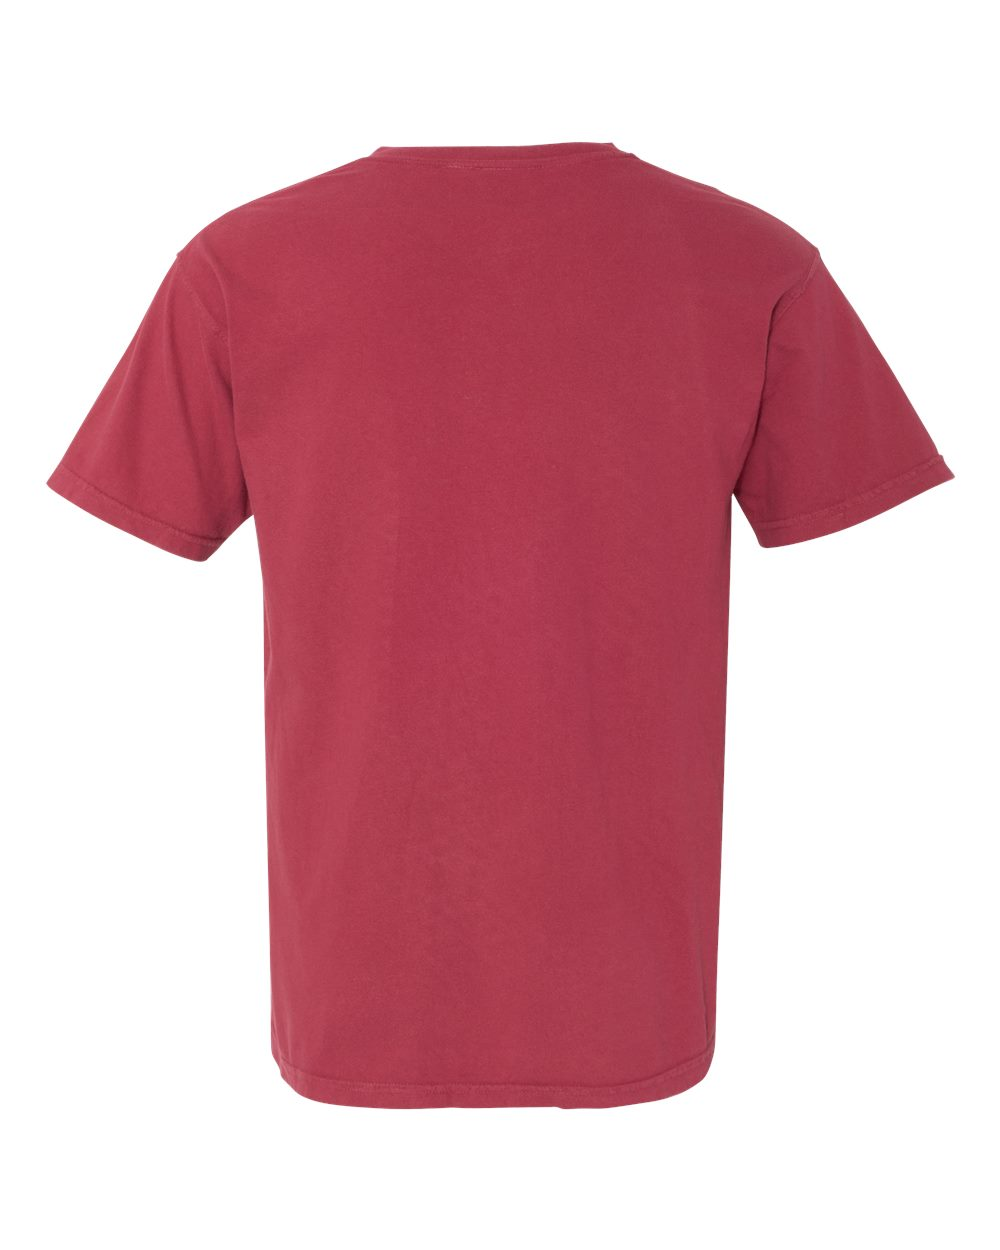 Comfort-Colors-Men-039-s-6-1-oz-Garment-Dyed-Pocket-T-Shirt-6030CC-S-3XL thumbnail 28